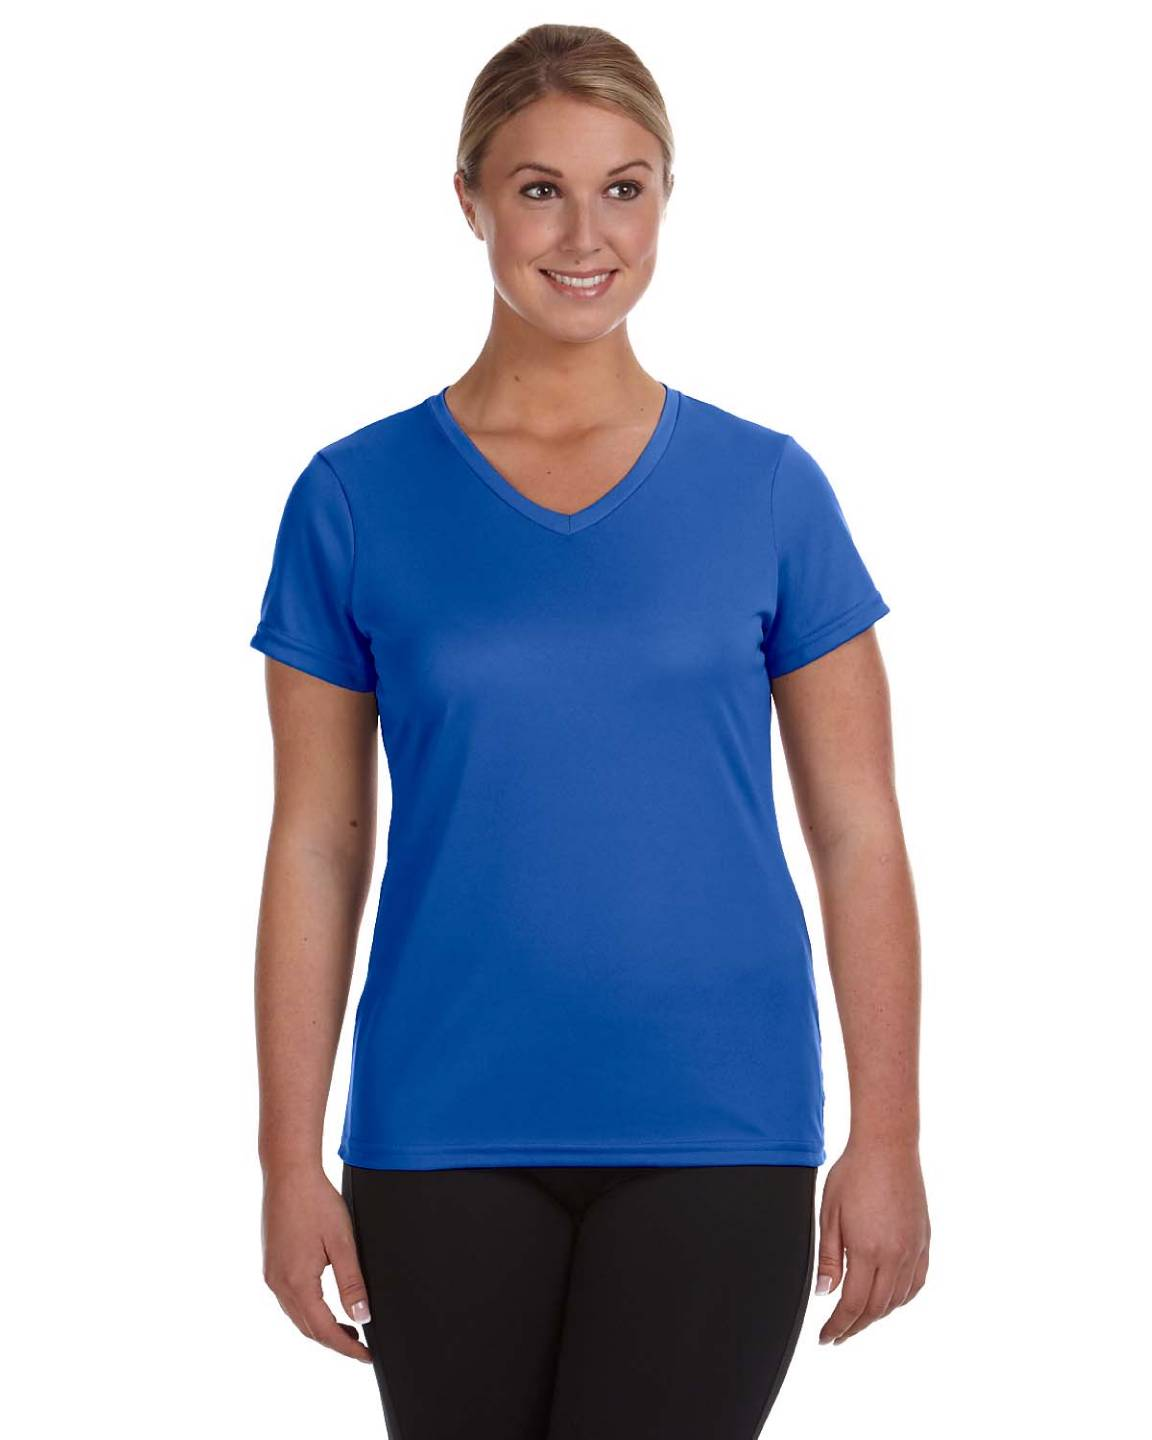 Augusta sportswear ladies moisture wicking v neck big size for Large shirt neck size